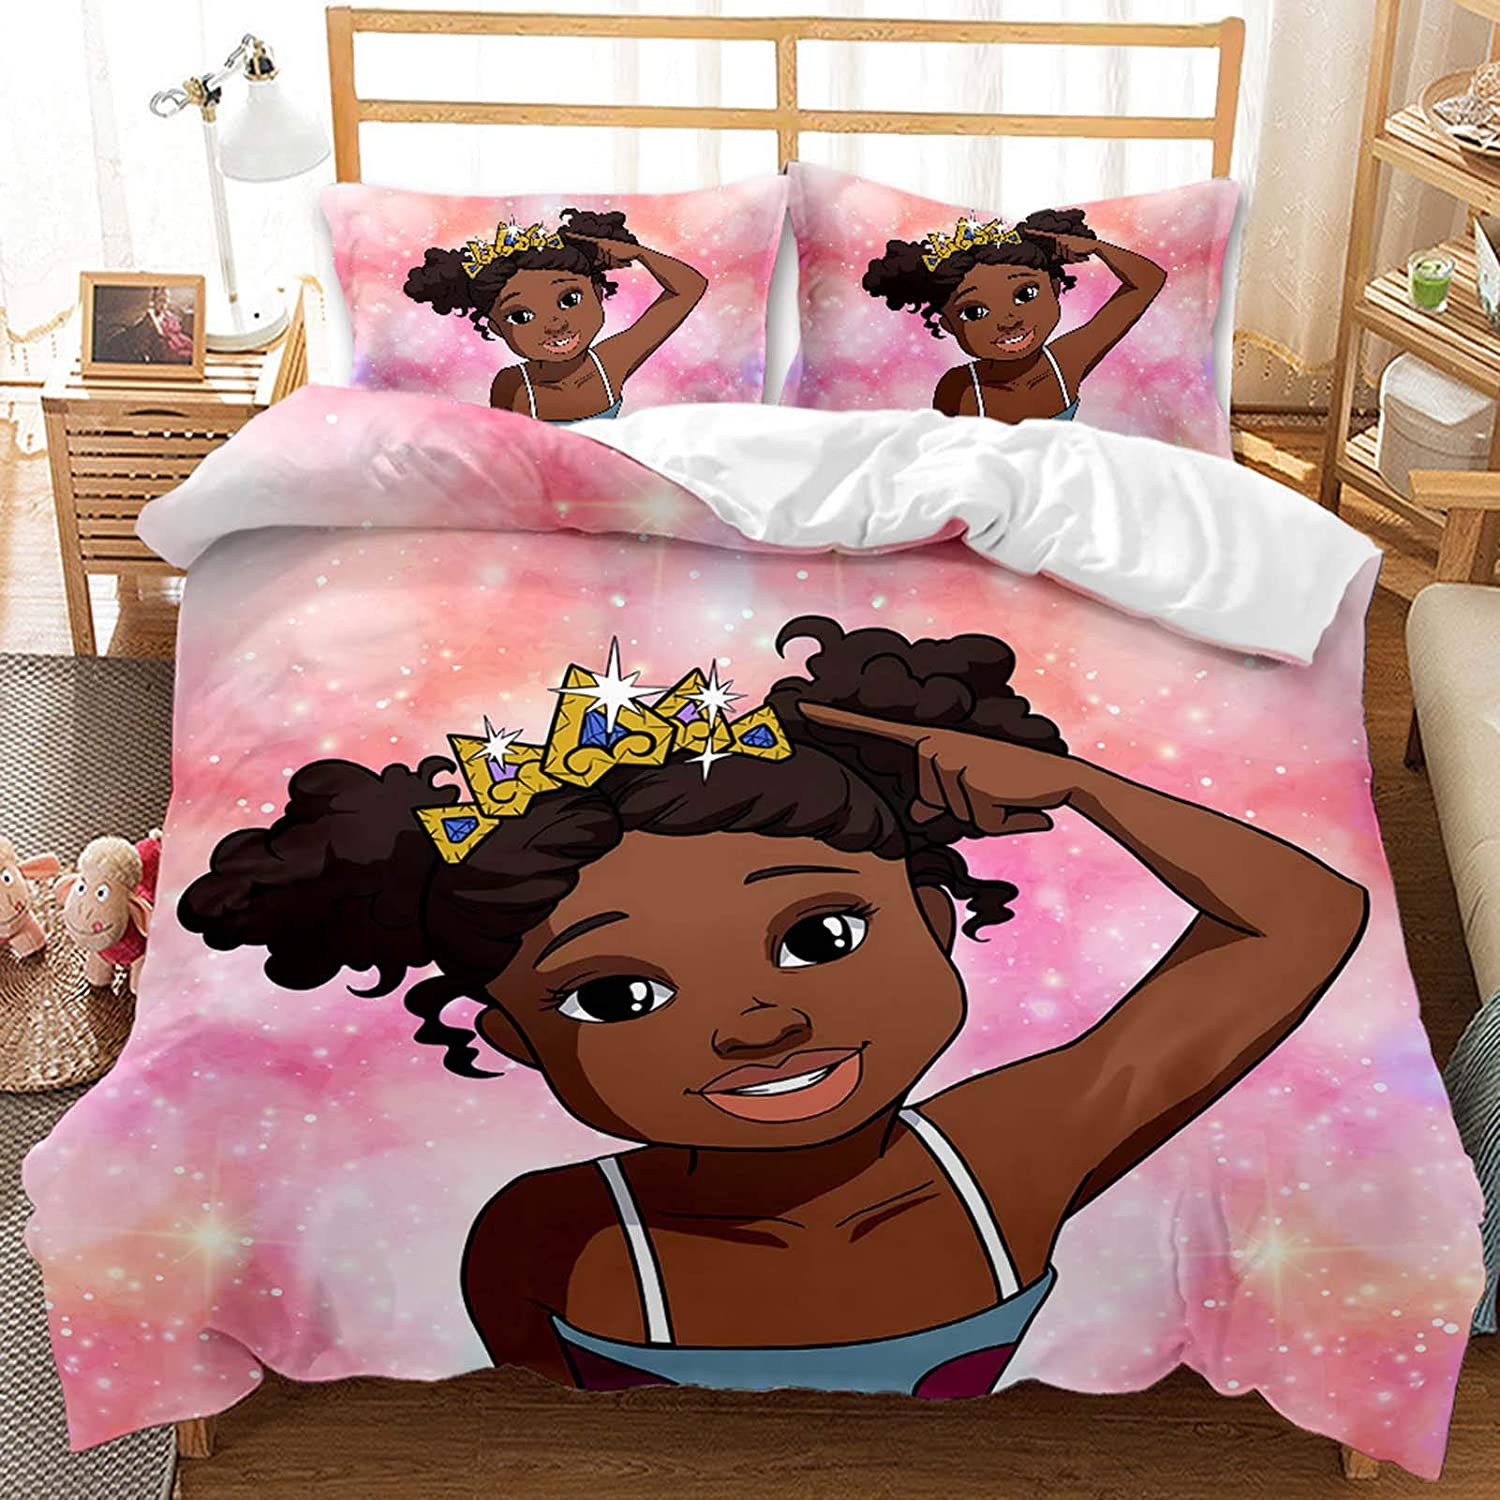 ADAK Pretty Black Girl Magic Bedding Set with Crown Full Size Pink Galaxy Bed Comforter Cover for Kids Teens Girls Bedroom Decor,1 Duvet Cover+2 Pillowcases